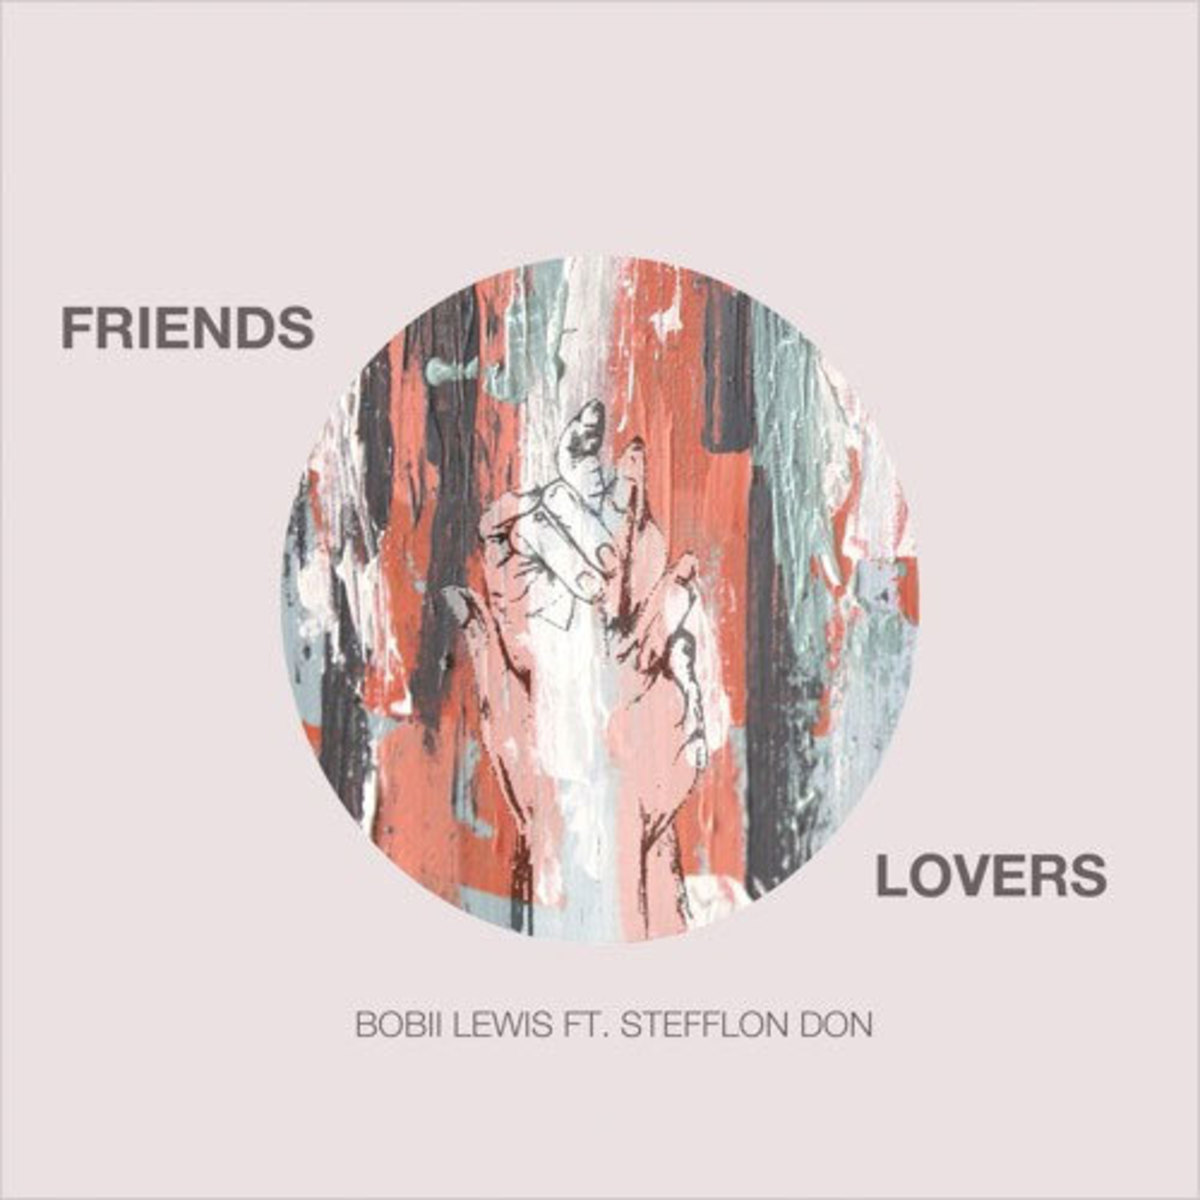 bobii-lewis-friend-and-lovers.jpg